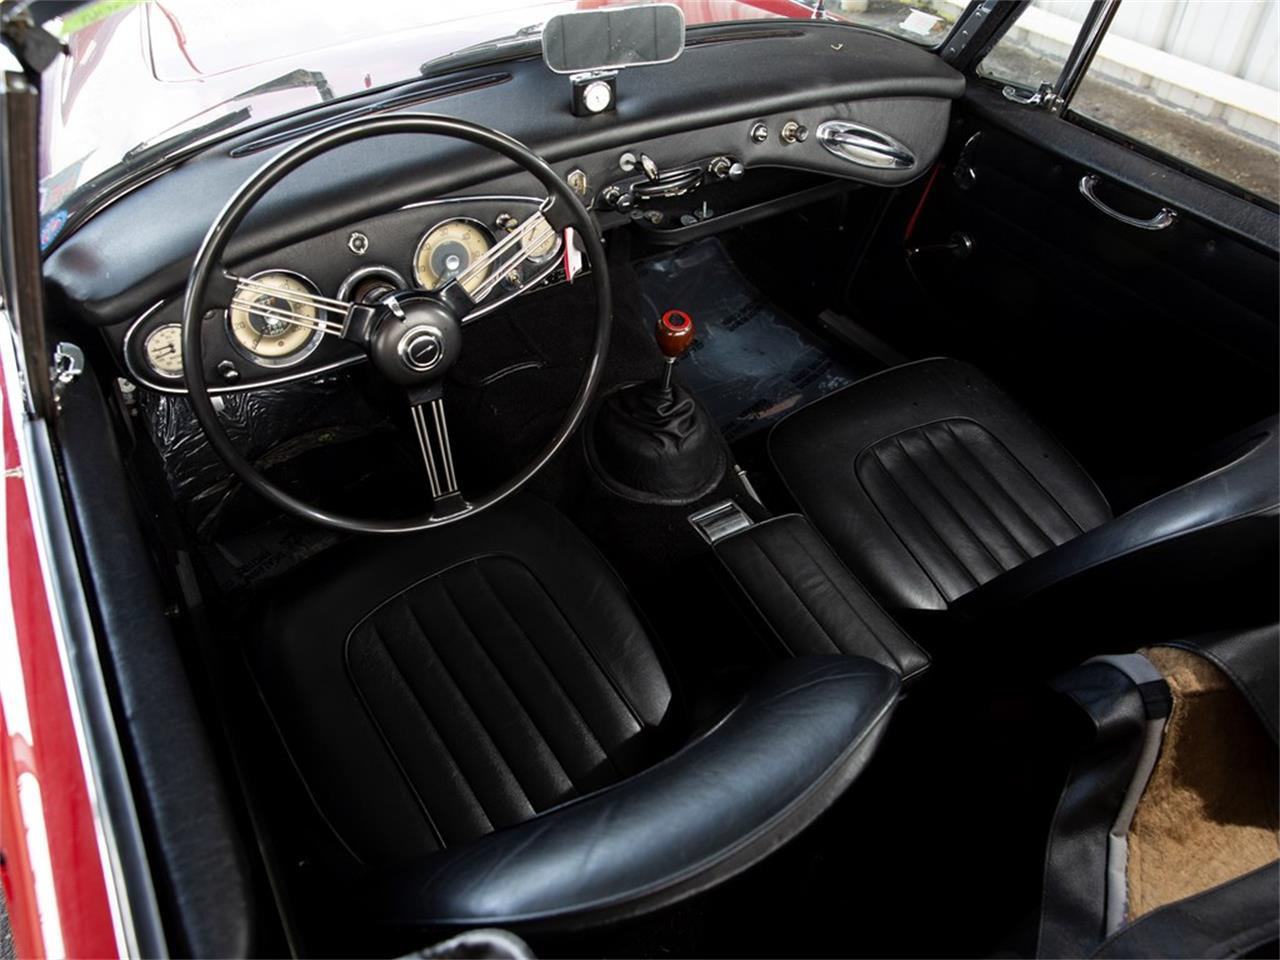 Large Picture of Classic '63 Austin-Healey 3000 Mk II BJ7 located in Auburn Indiana Auction Vehicle - NUCB